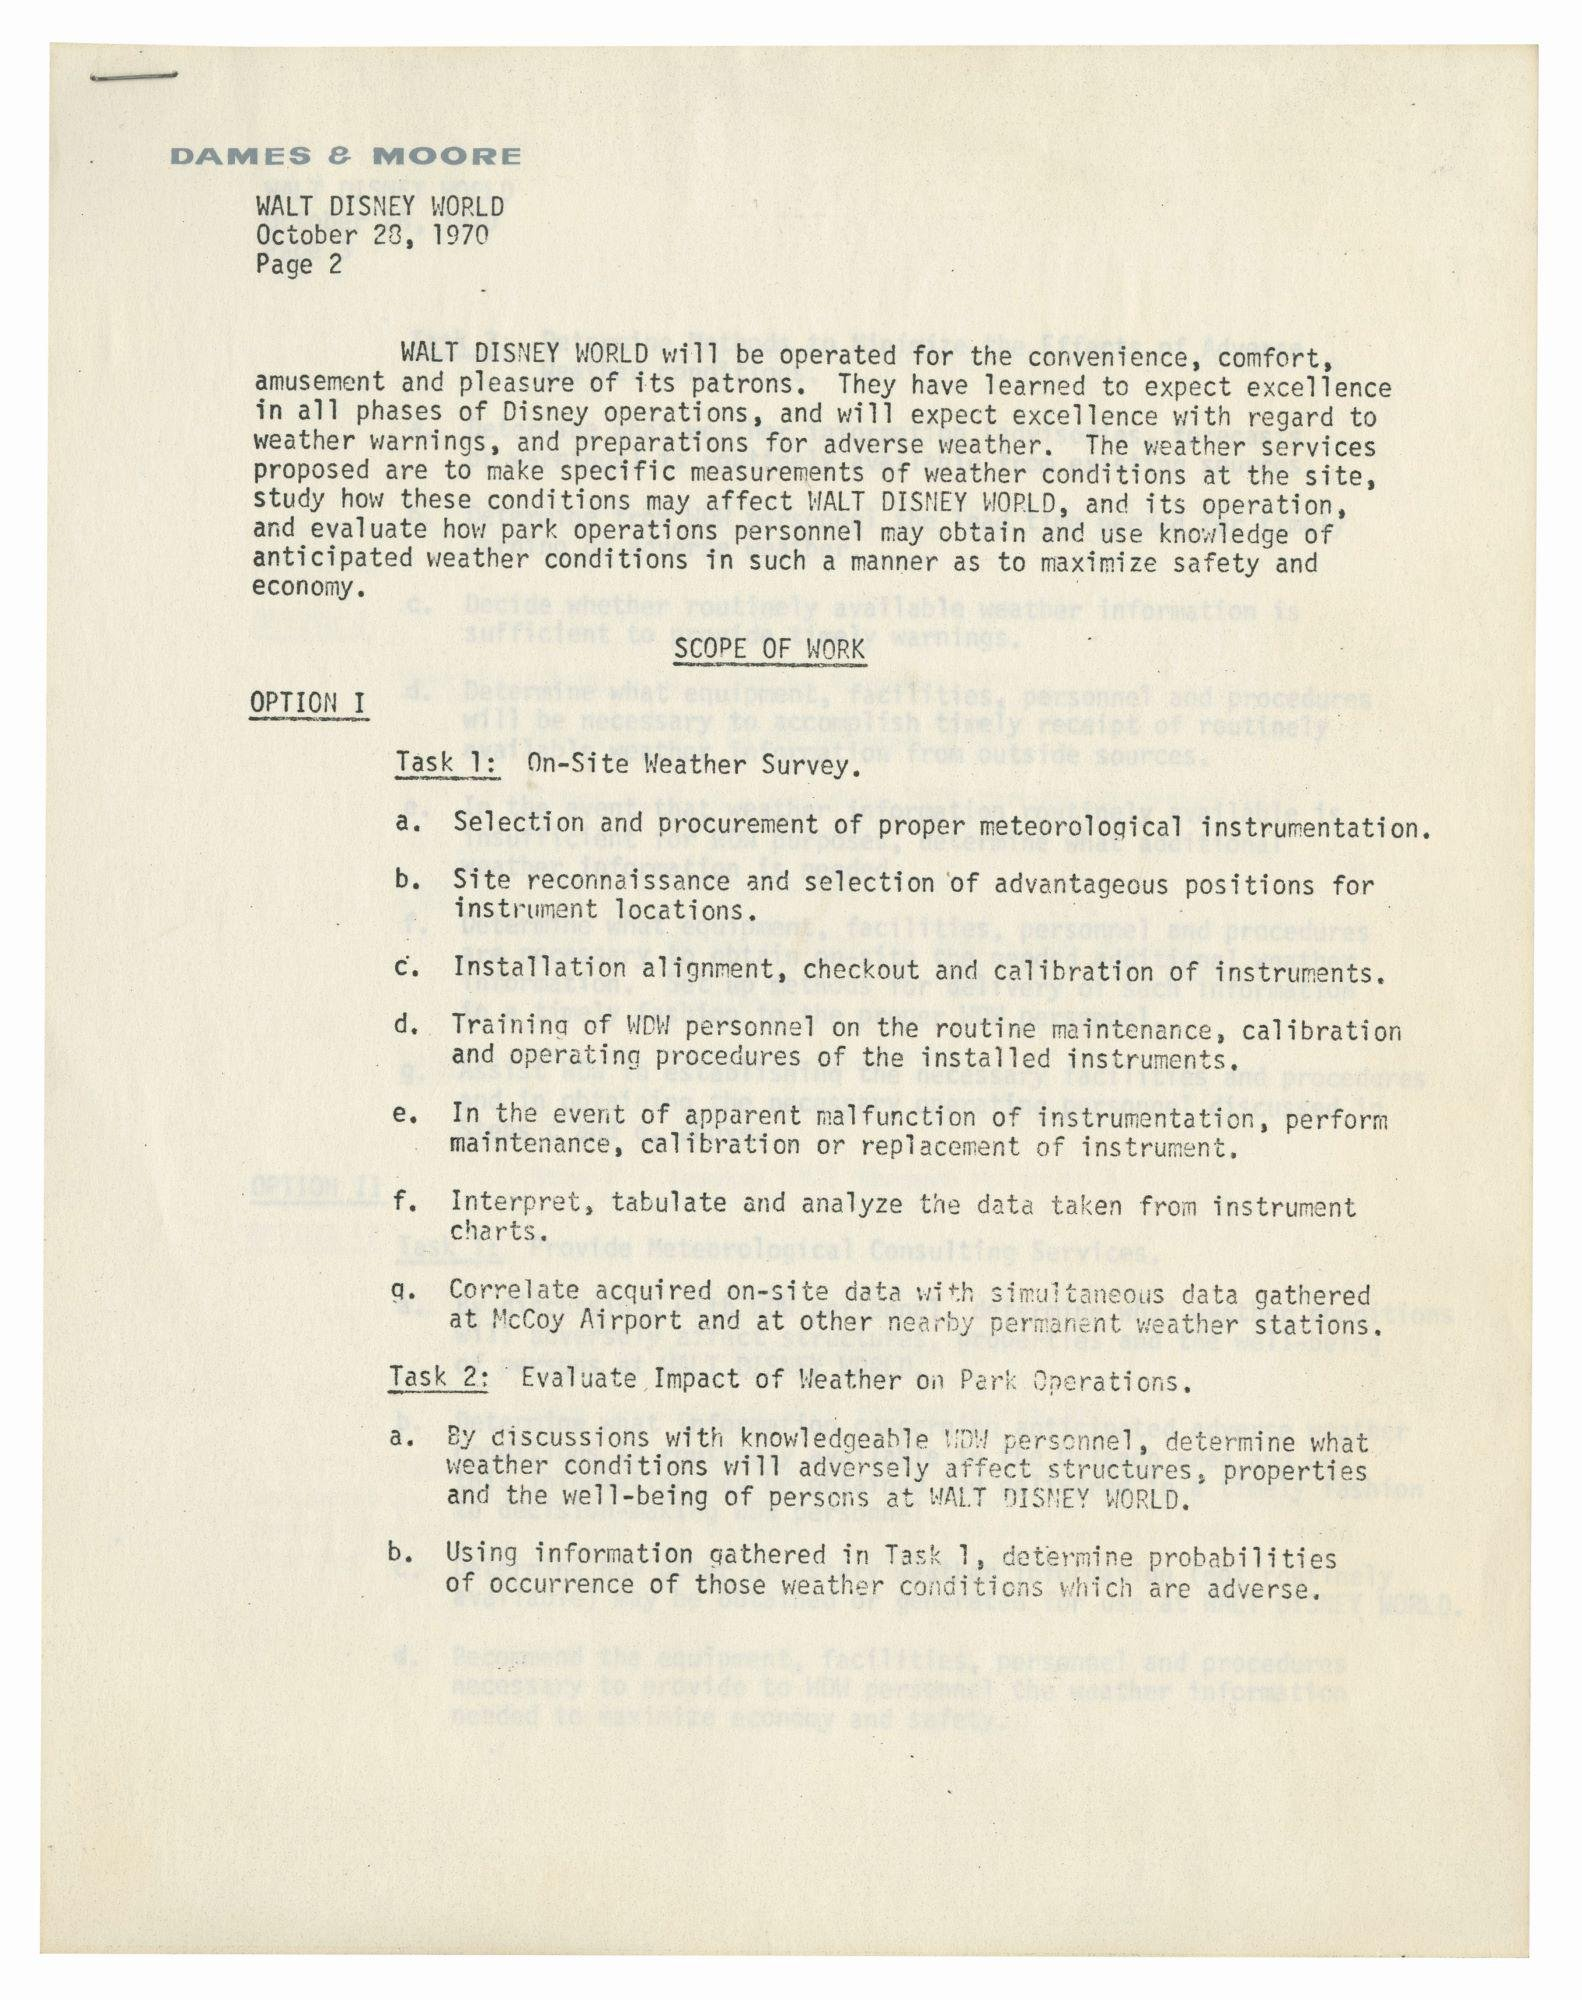 Walt Disney World Pre-Opening Meteorology Document.